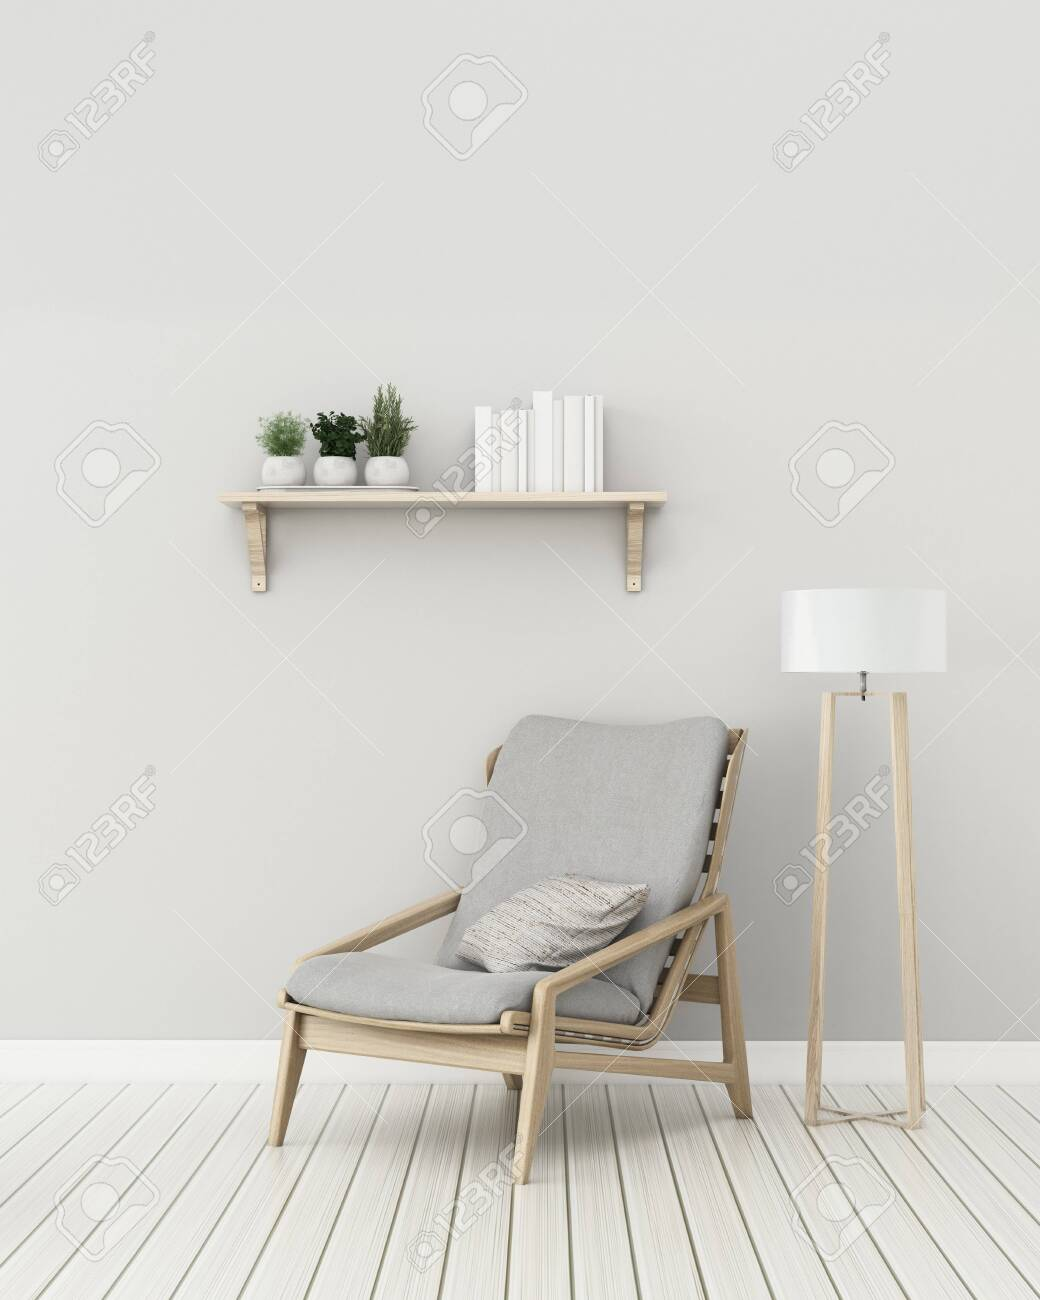 Modern interior of living room with chair and lamp. -3d rendering - 128796319